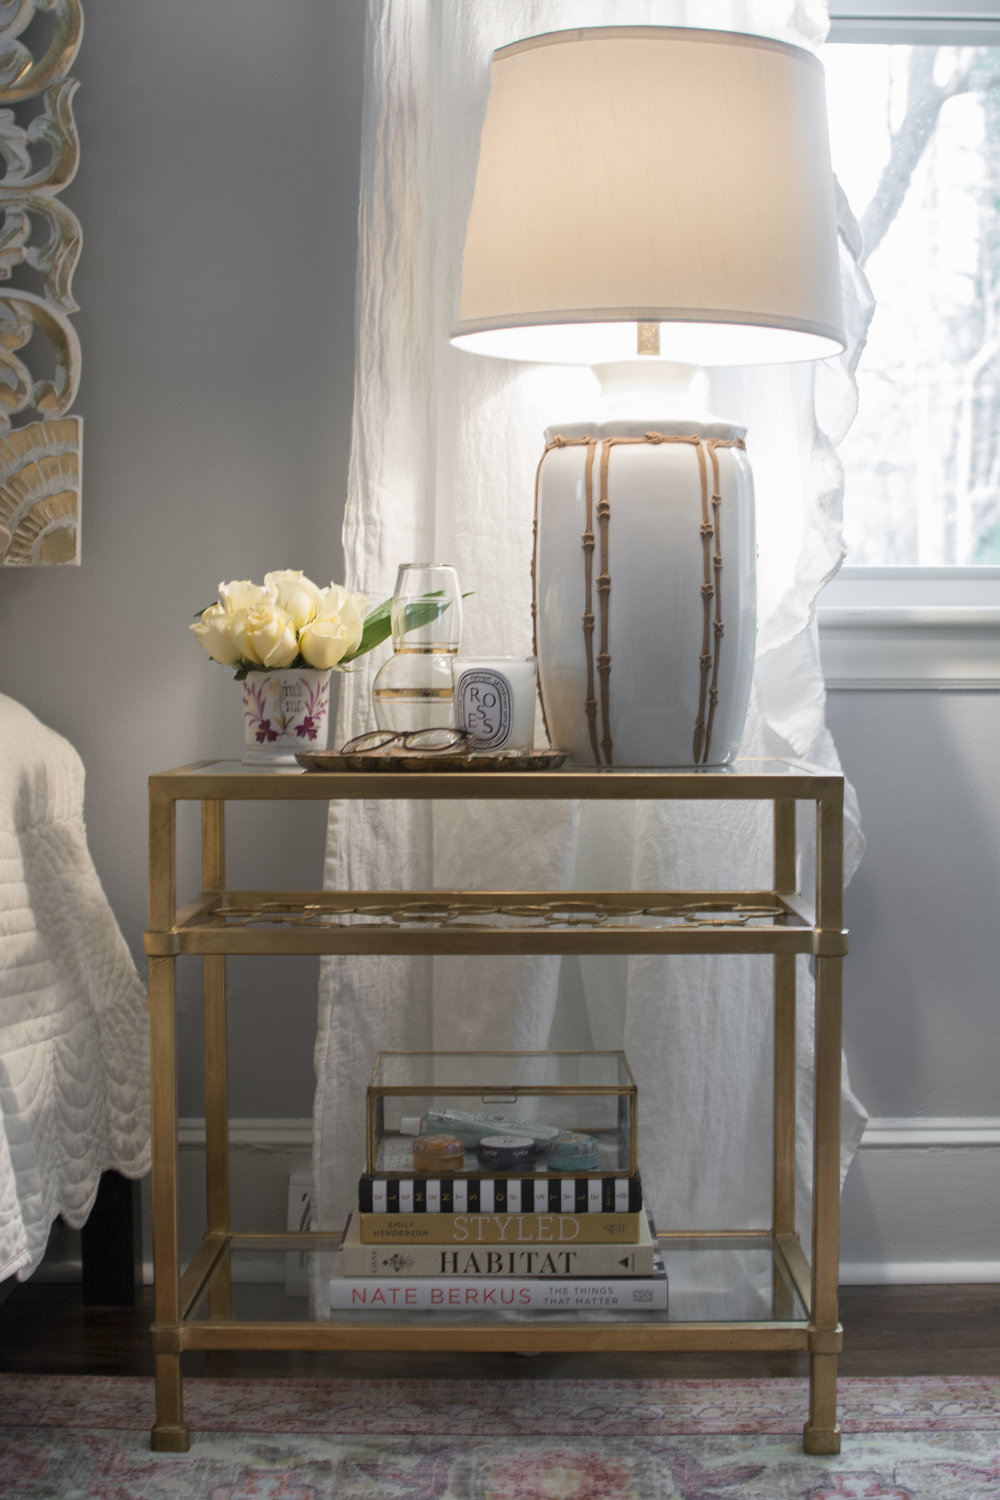 Artful Interiors - Bohemian Bedroom - Nightstand Detail